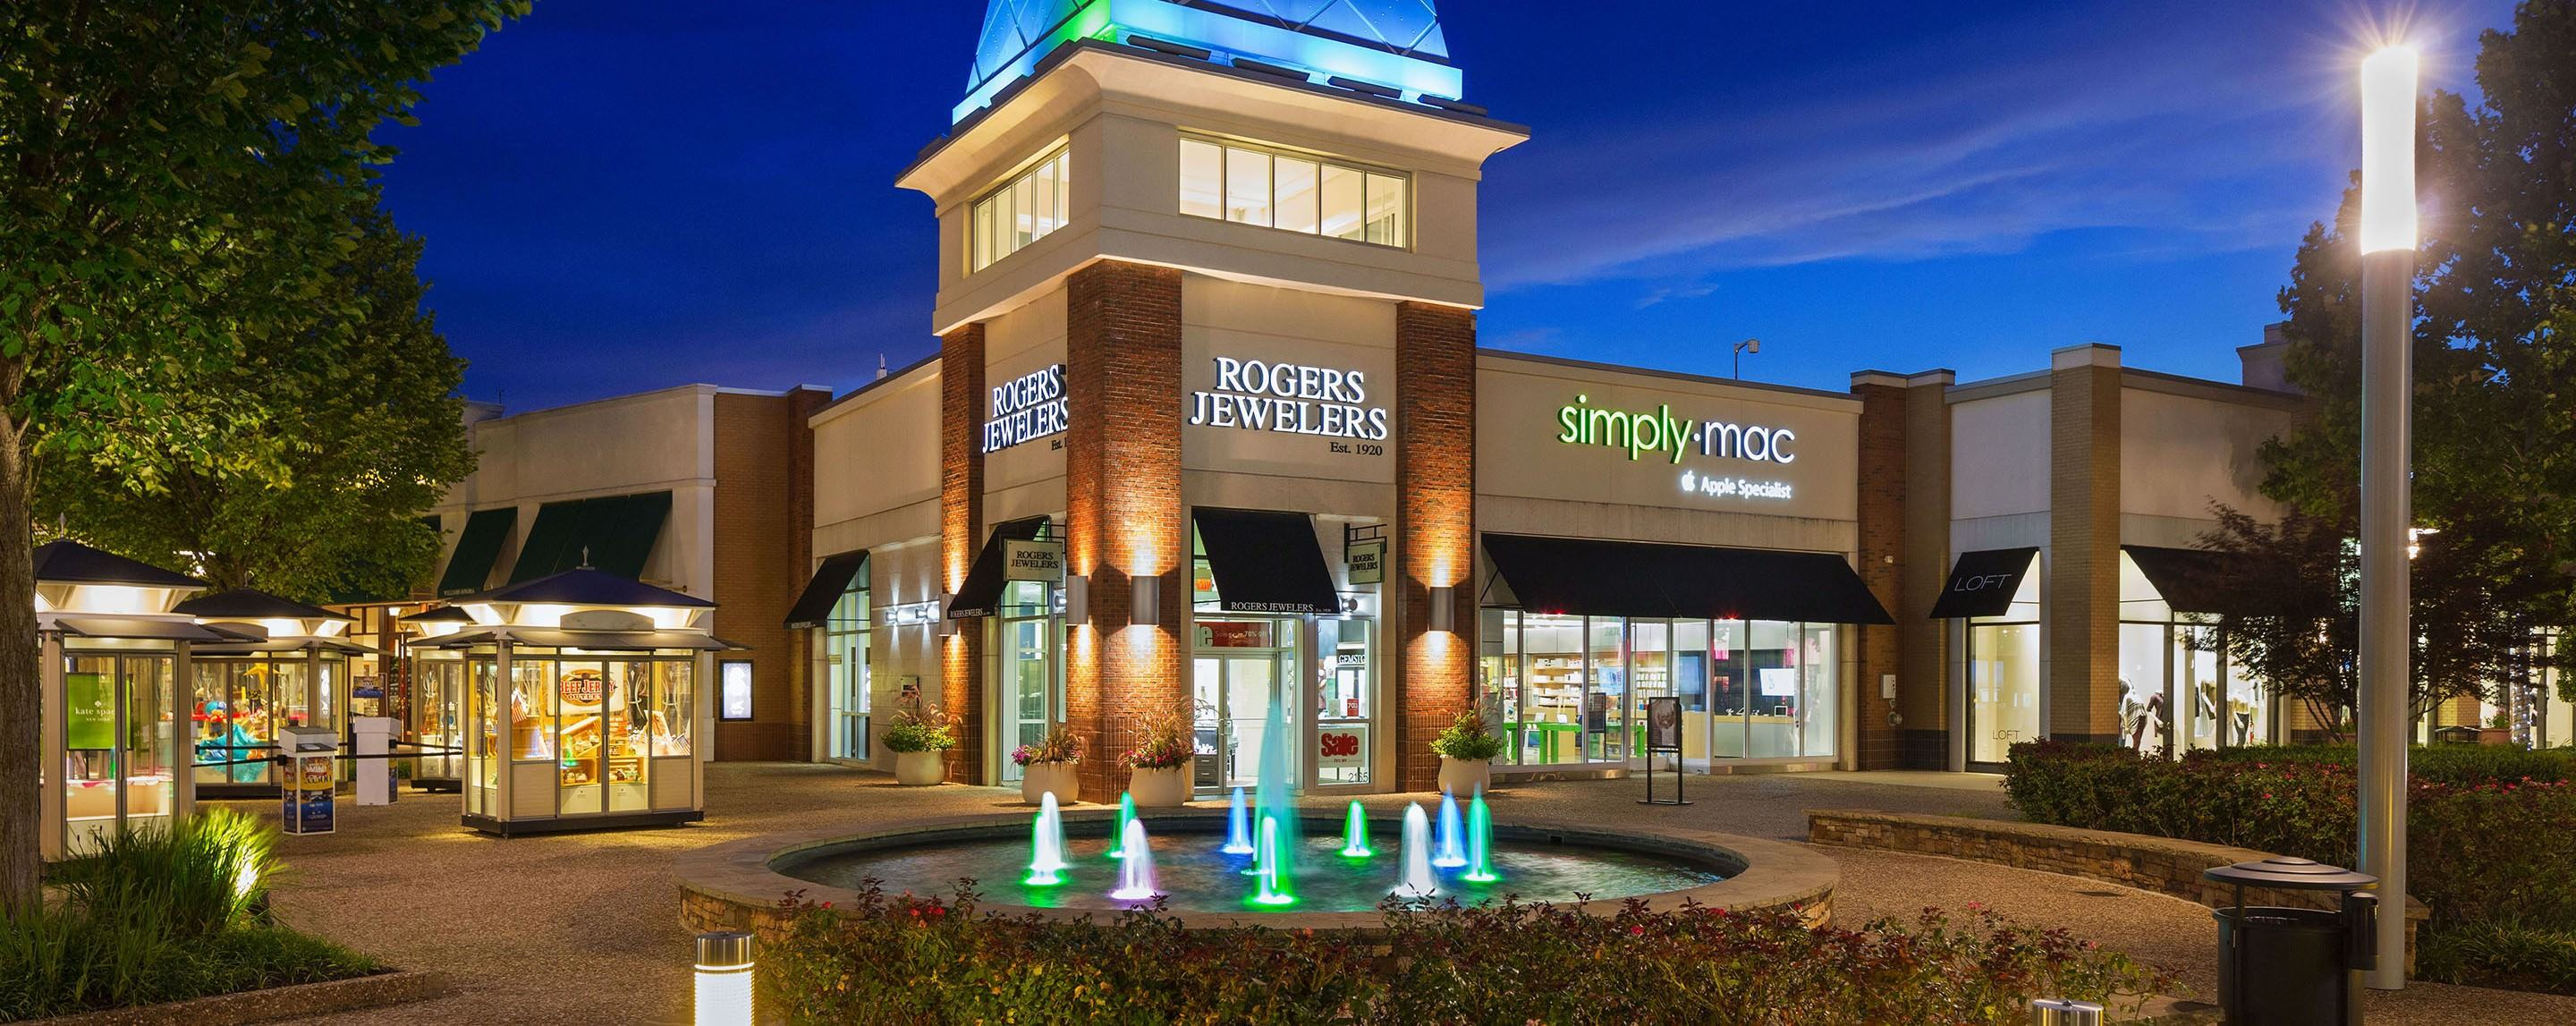 A colorfully lit fountain stands in front of Pinnacle Hills mall. Rogers Jewelers can be seen in the background.